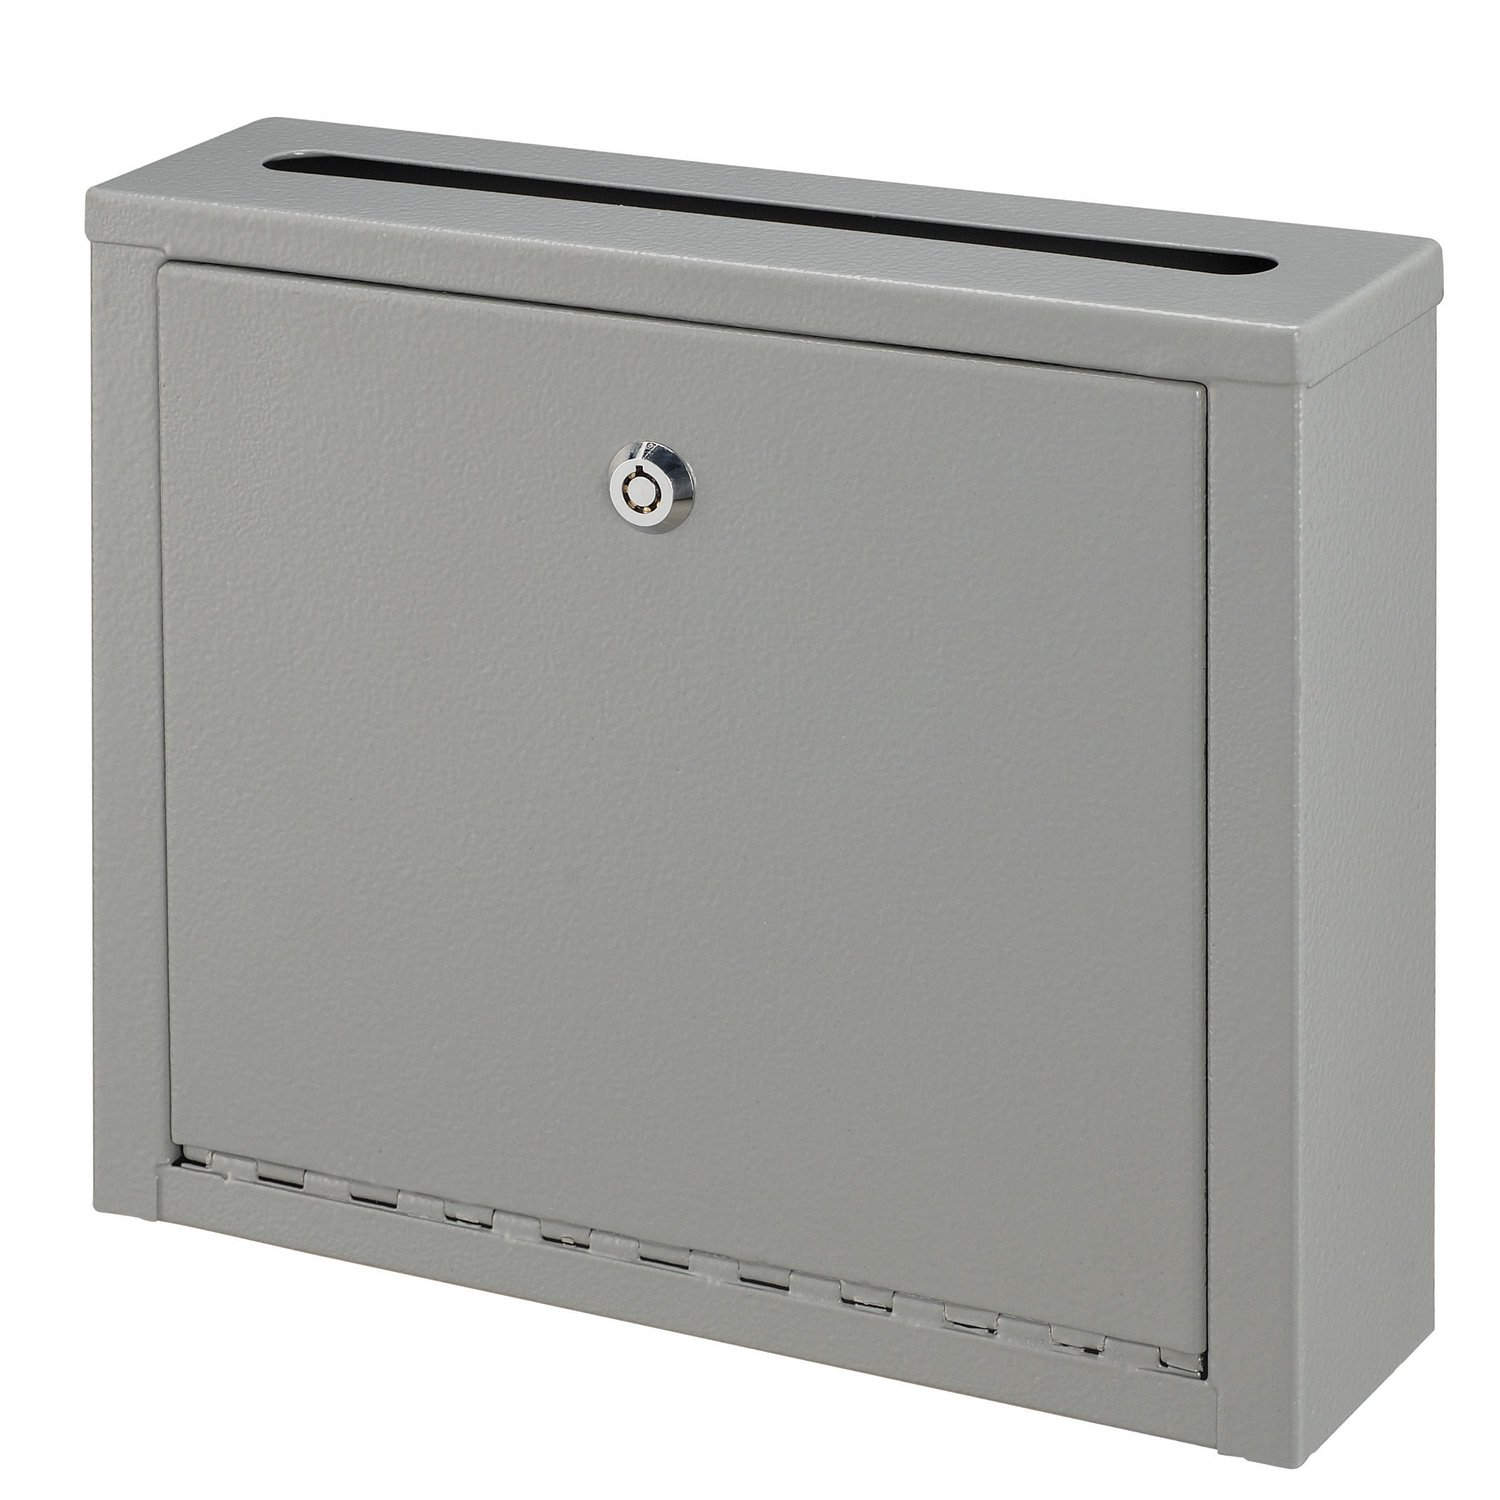 Small Inter-Office Mailbox 12''W x 3'' D x 10'' H